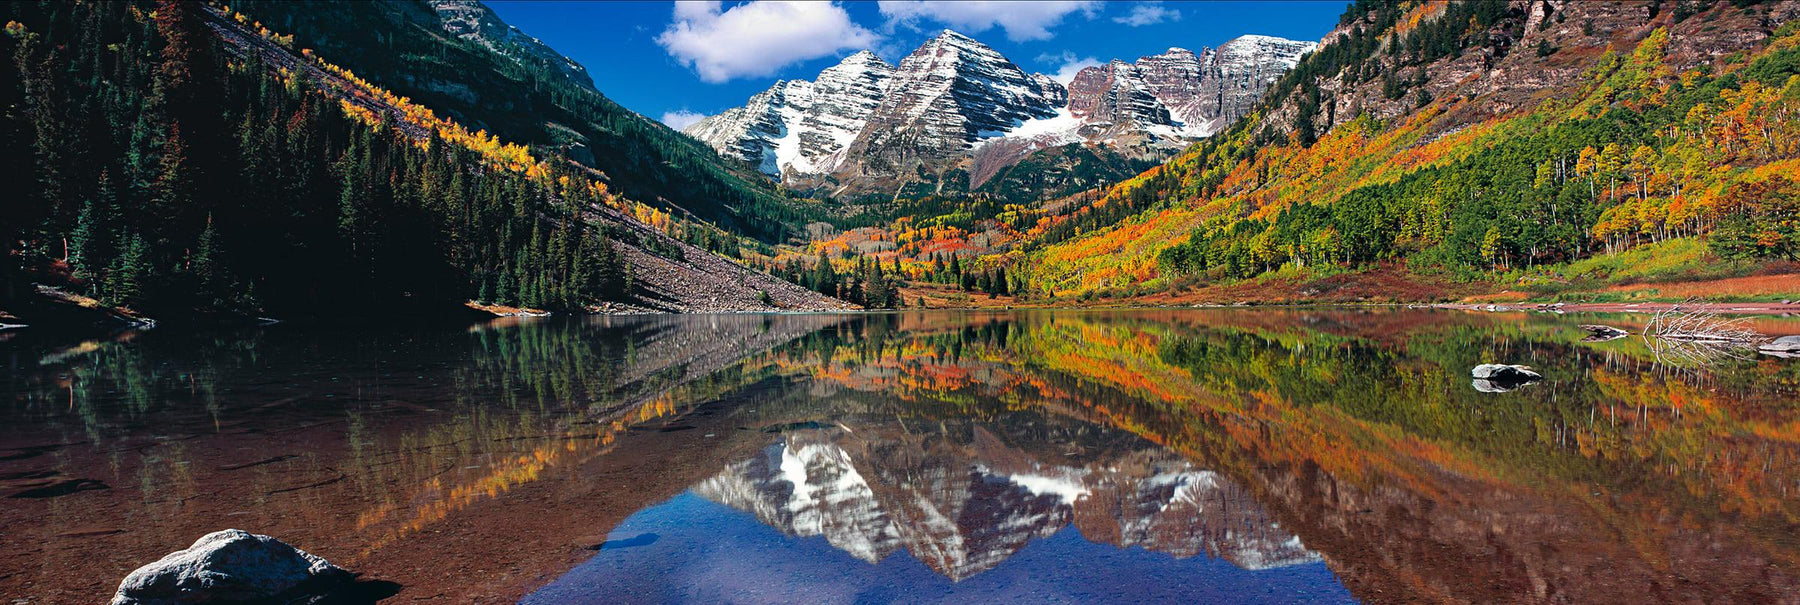 Maroon Lake reflecting the Autumn forest and two snow covered peaks of Maroon Bells Colorado